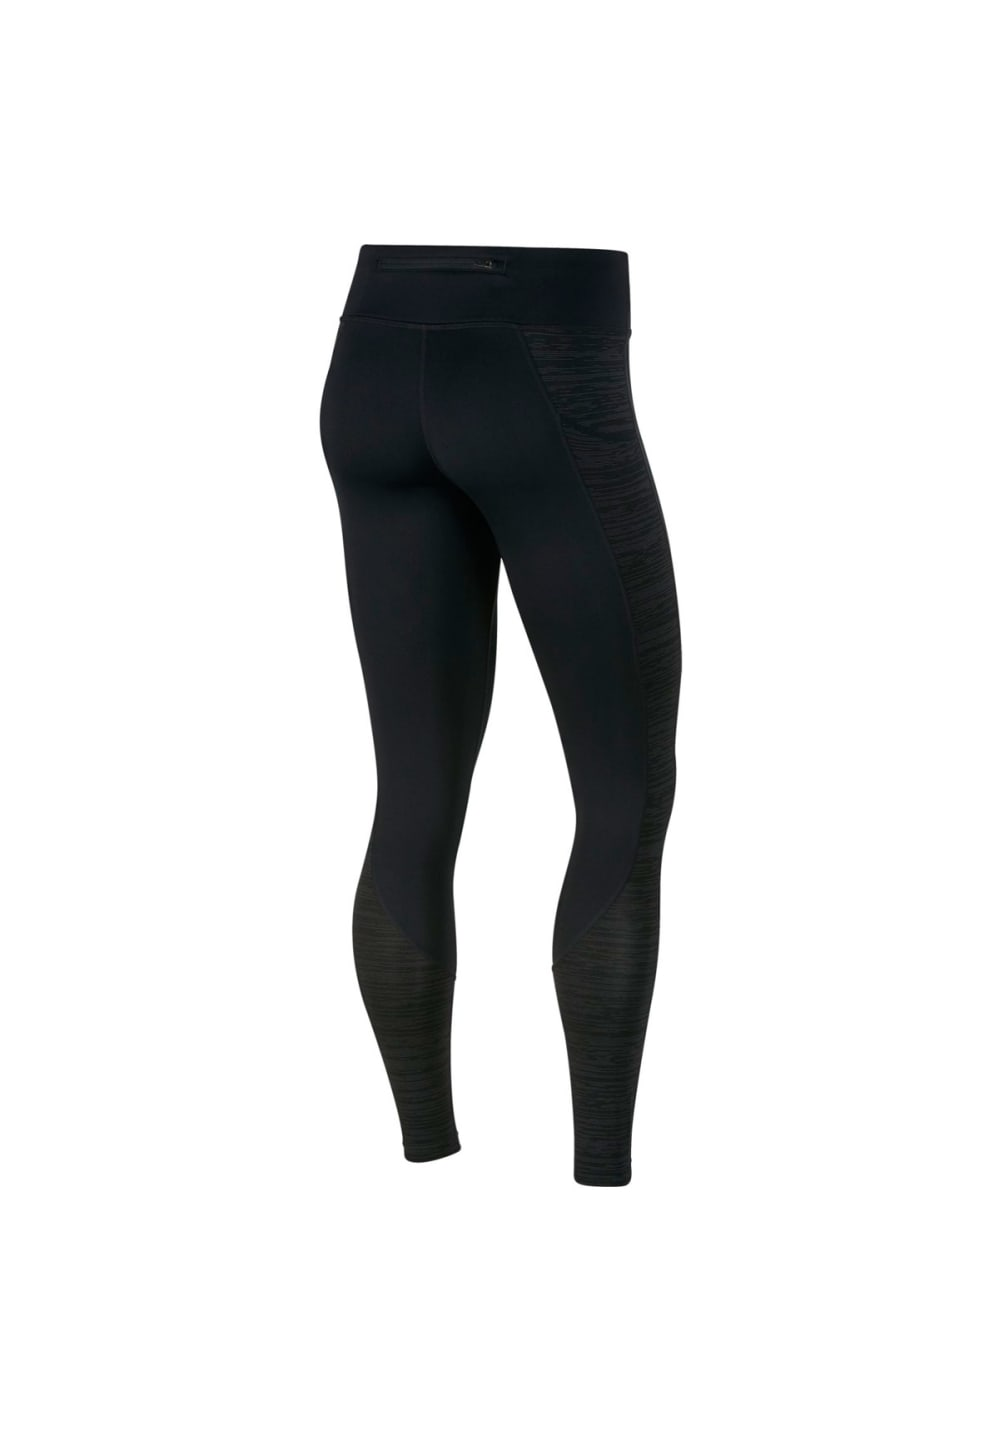 0dad1a4720d2a Nike Racer Warm Running Tights - Running trousers for Women - Black ...